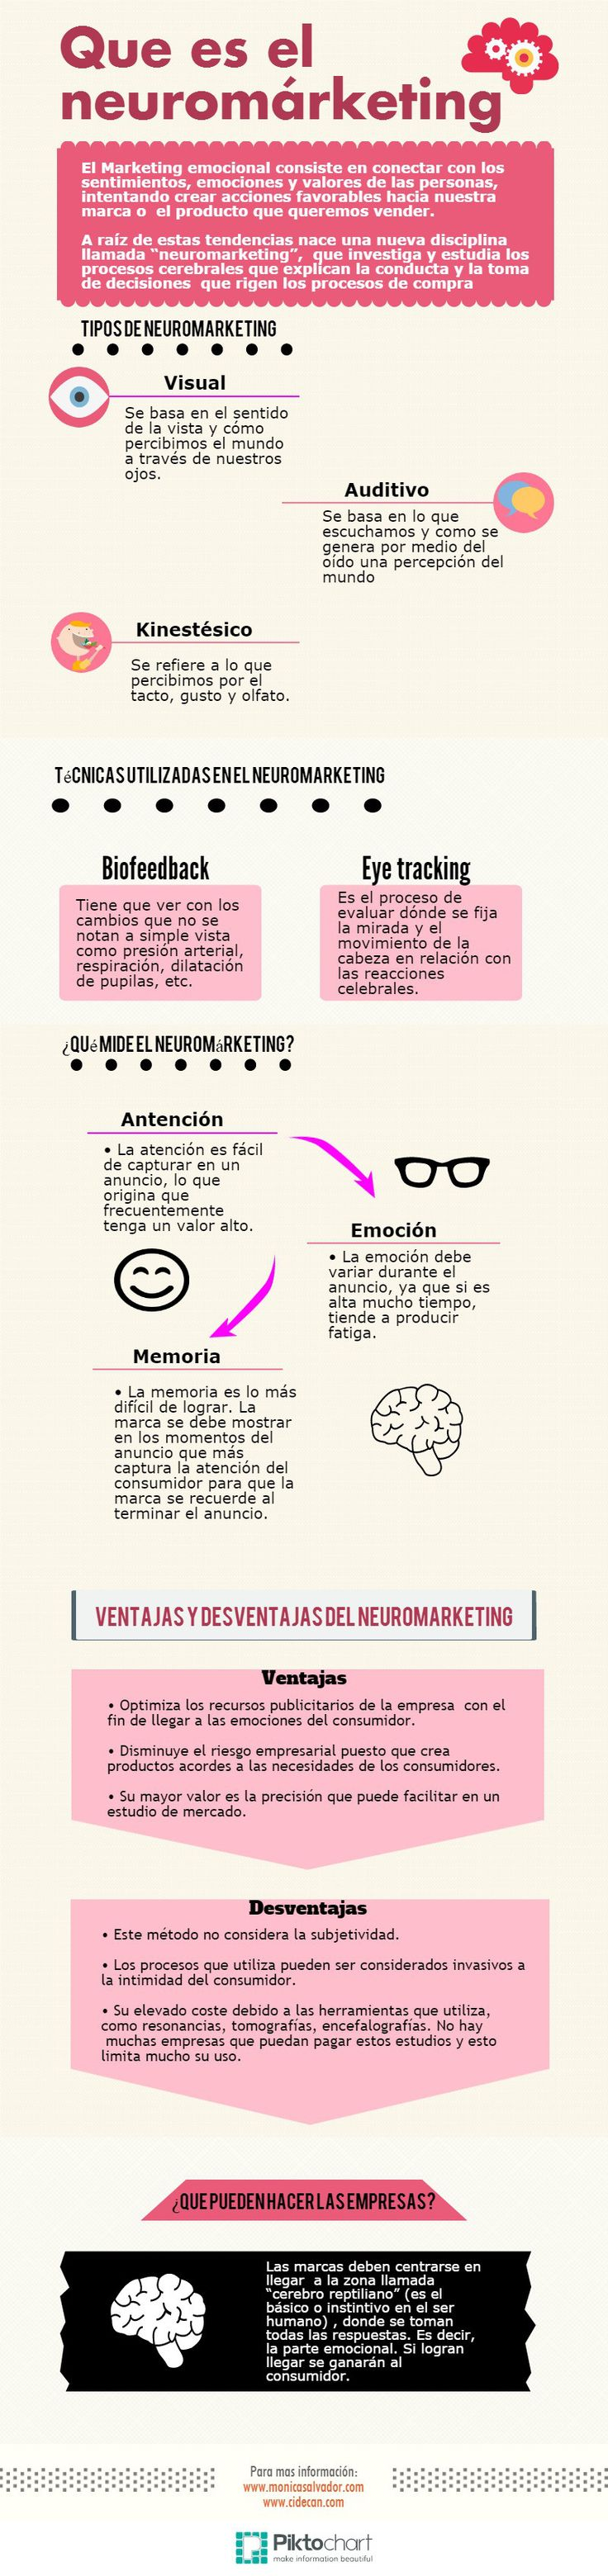 Qué es el Neuromarketing #infografia #infographic #psychology #marketing